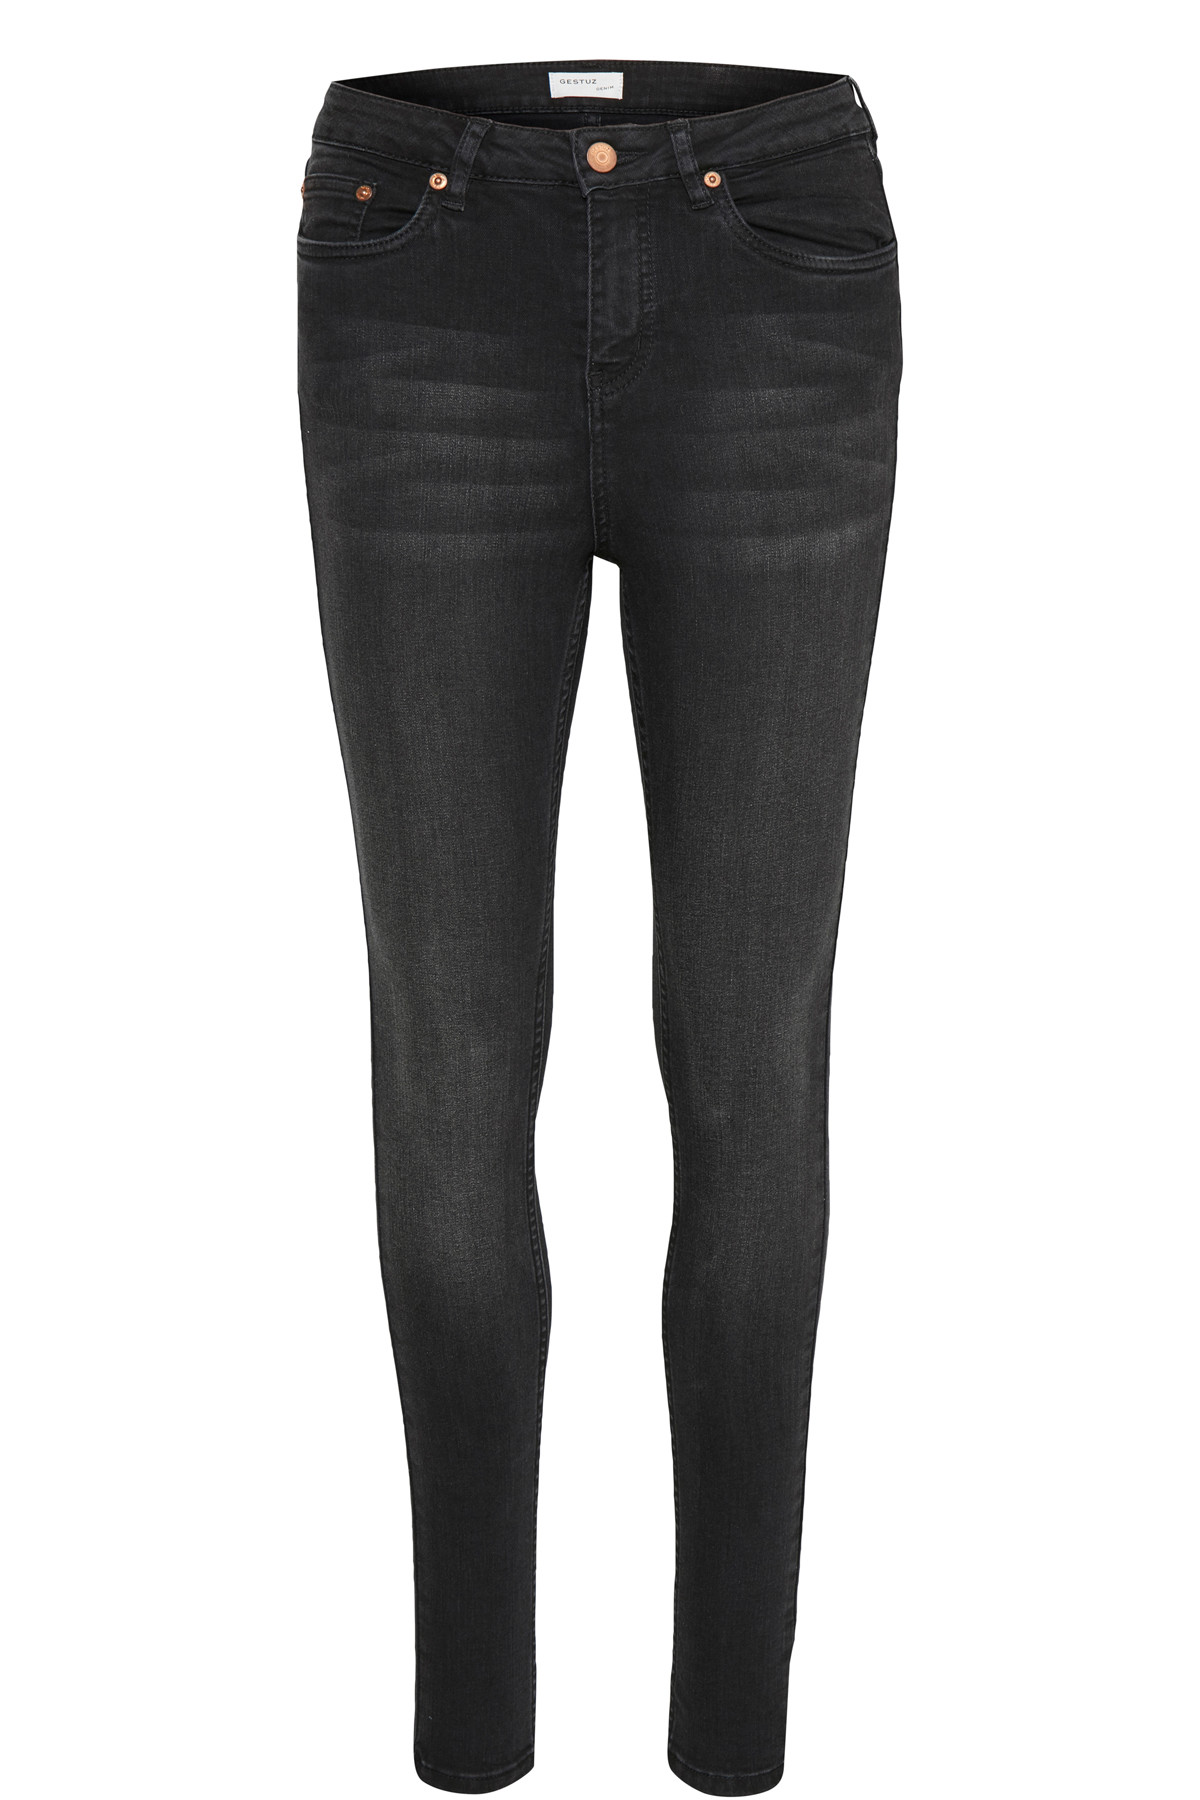 "Image of   GESTUZ EMILY JEANS 10900068 (Charcoal Grey 90899, ""32"", 28)"